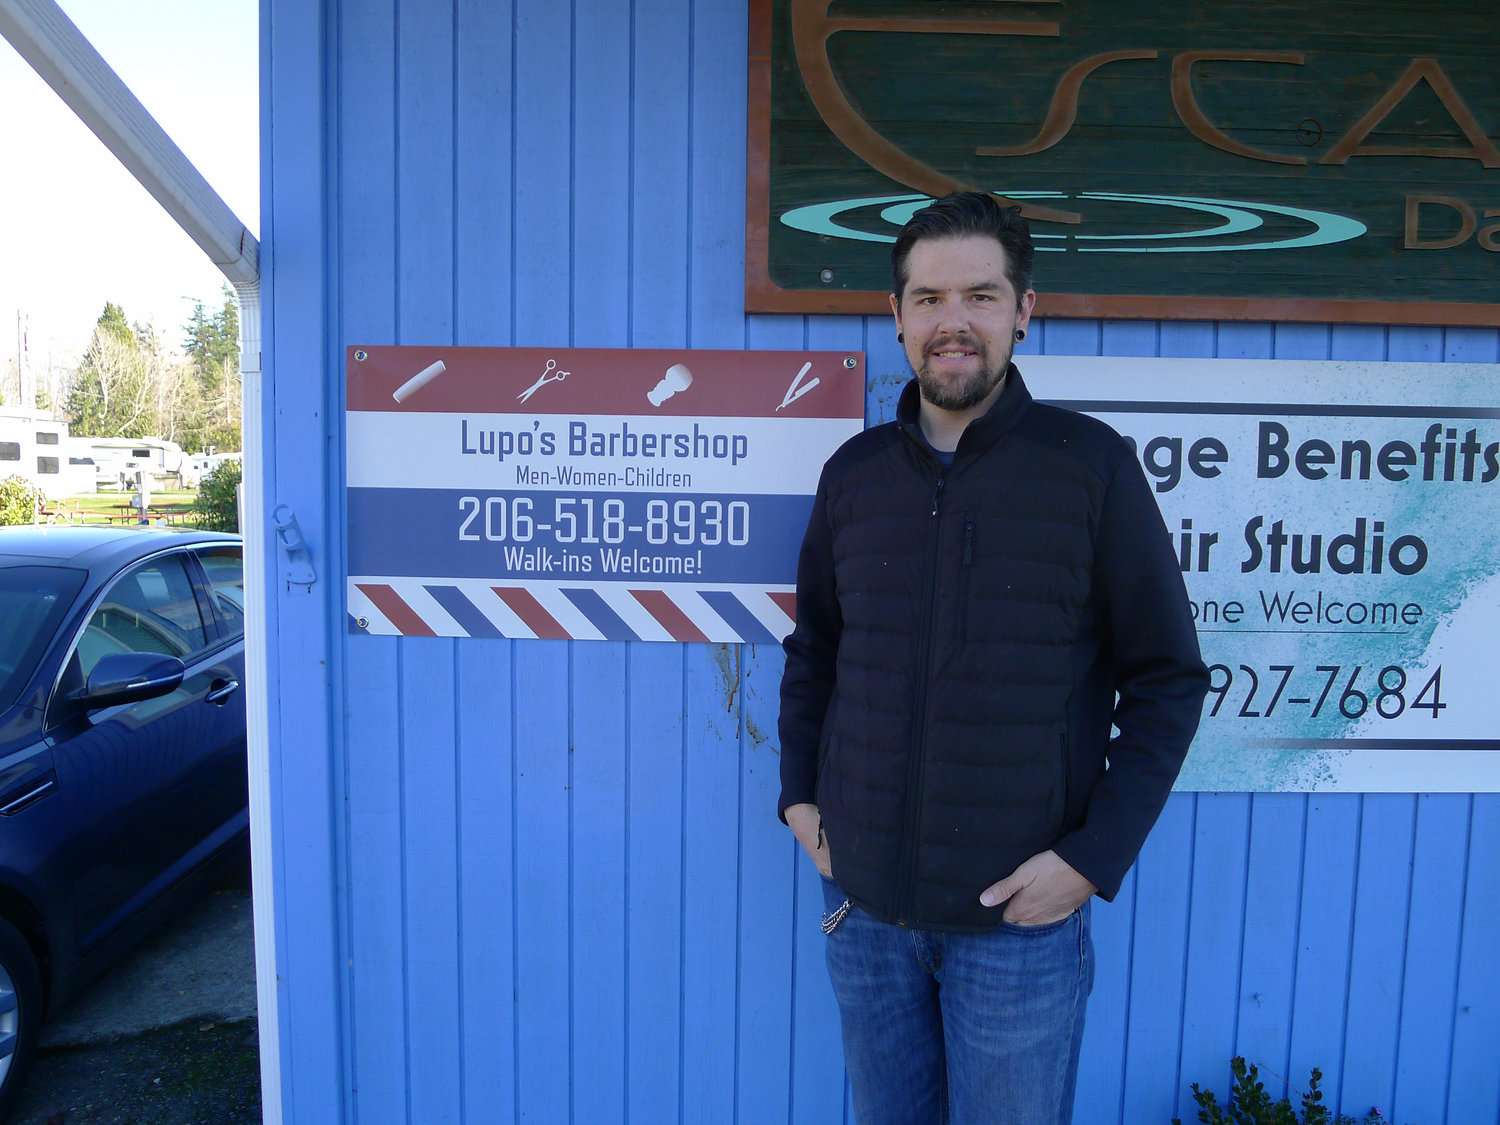 Mario Lupo, a barber who recently moved to Birch Bay.